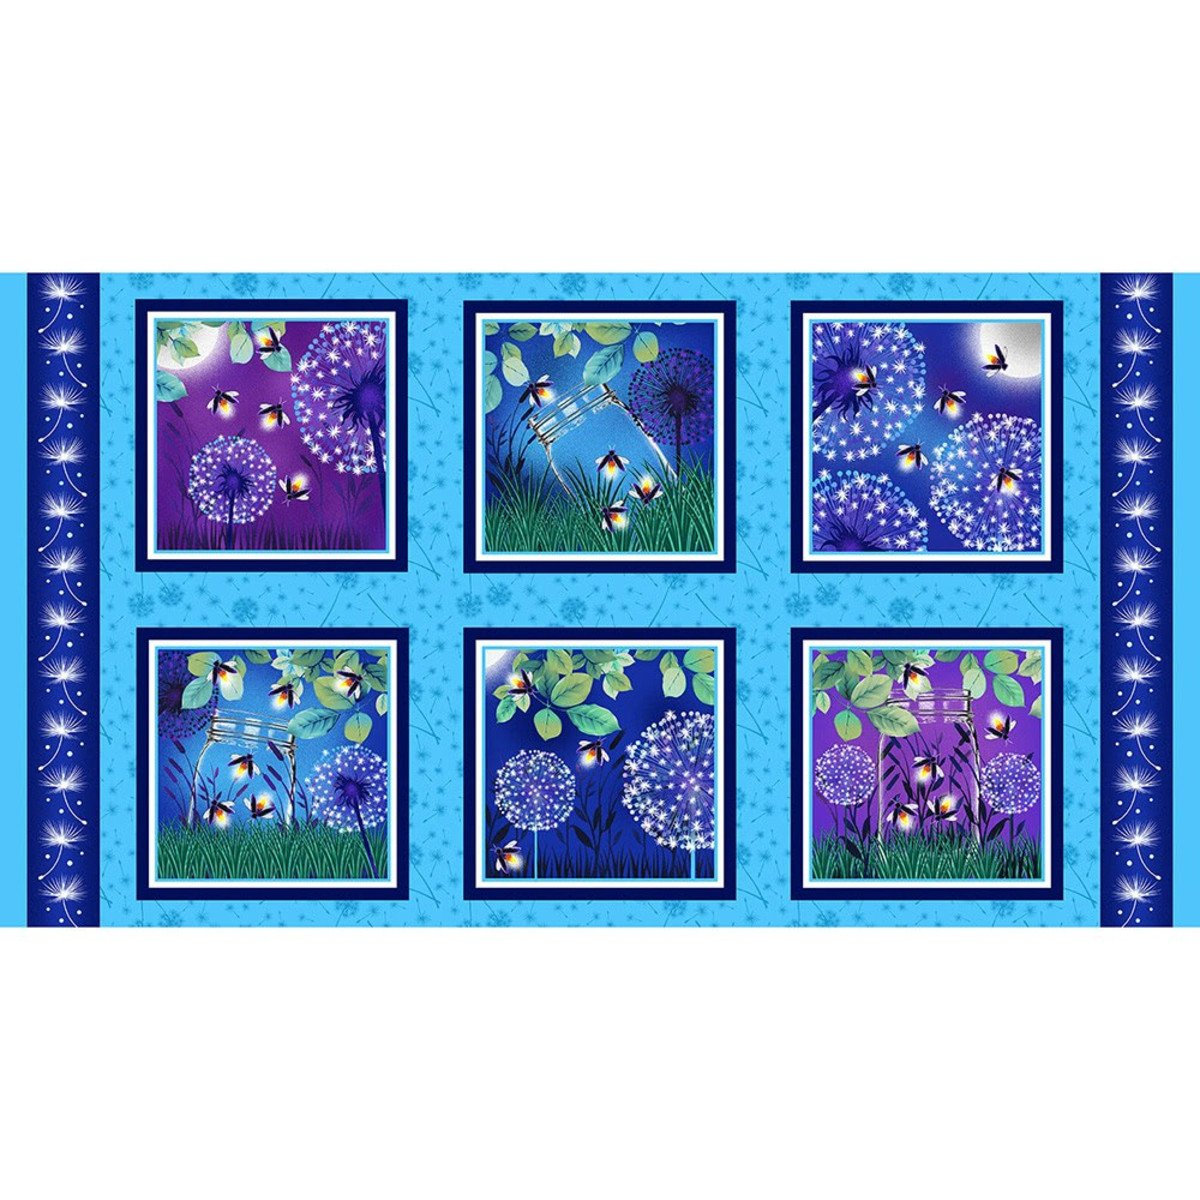 Let Your Light Shine Blocks Quilt Panel by Blank Quilting